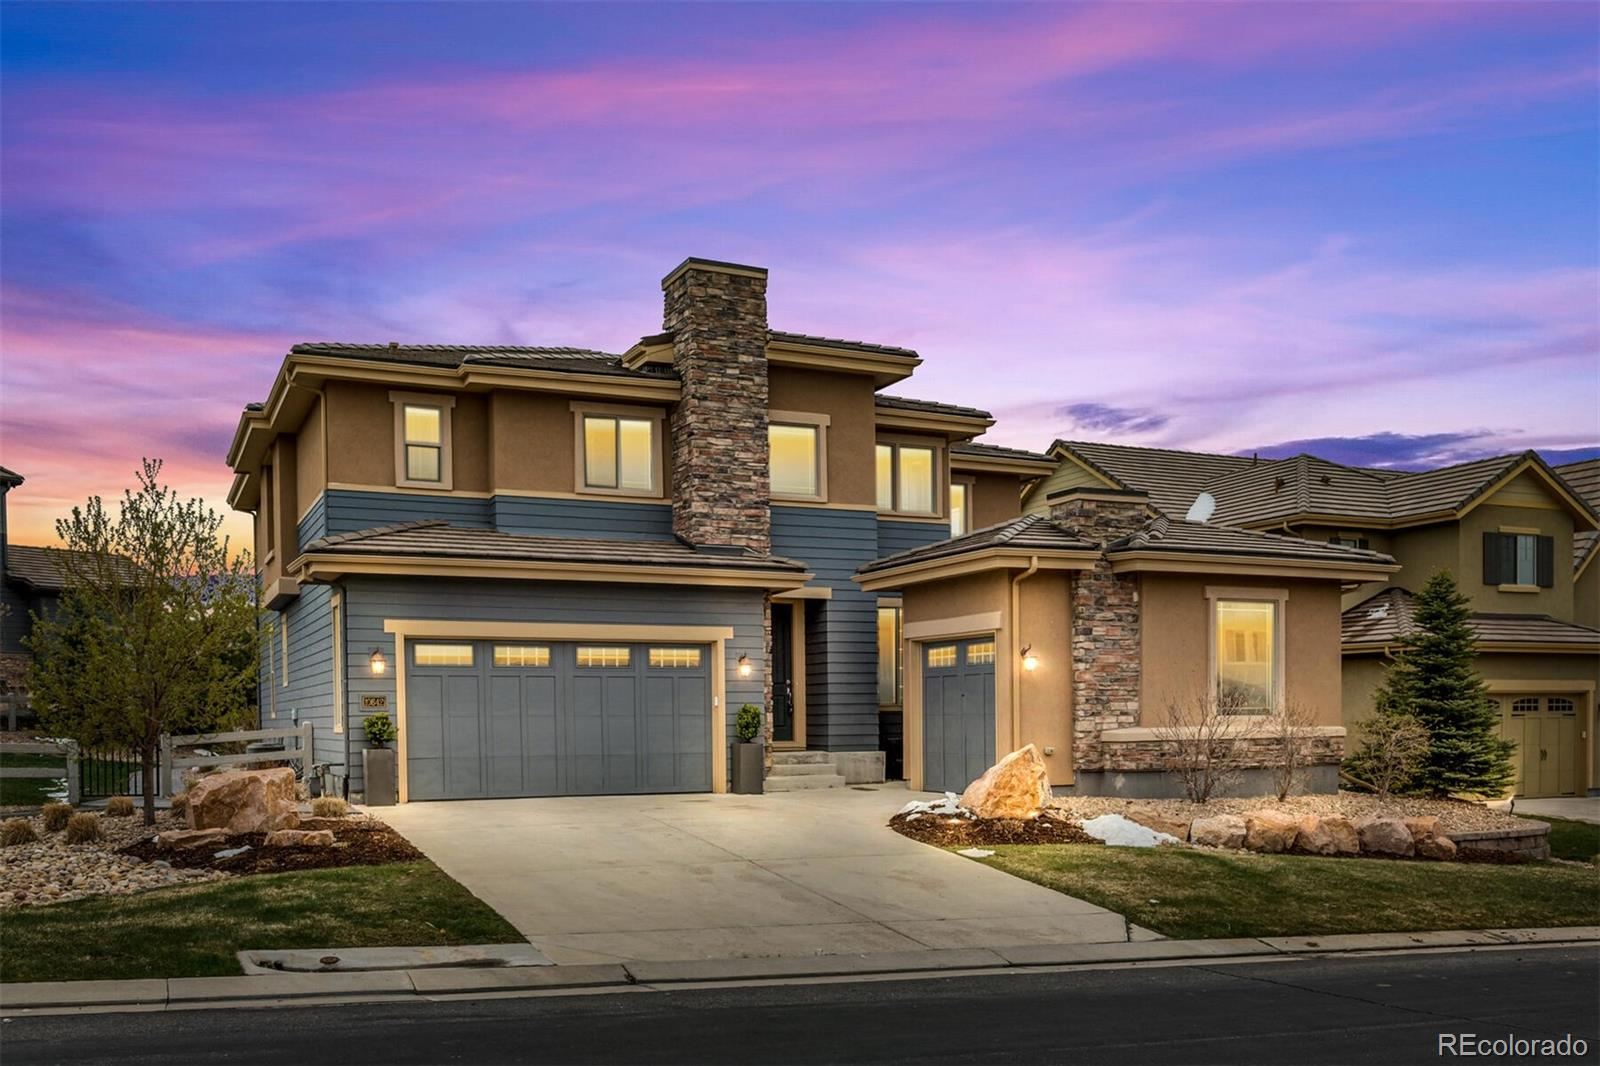 10642 manorstone drive highlands ranch co 2086721 madison company properties